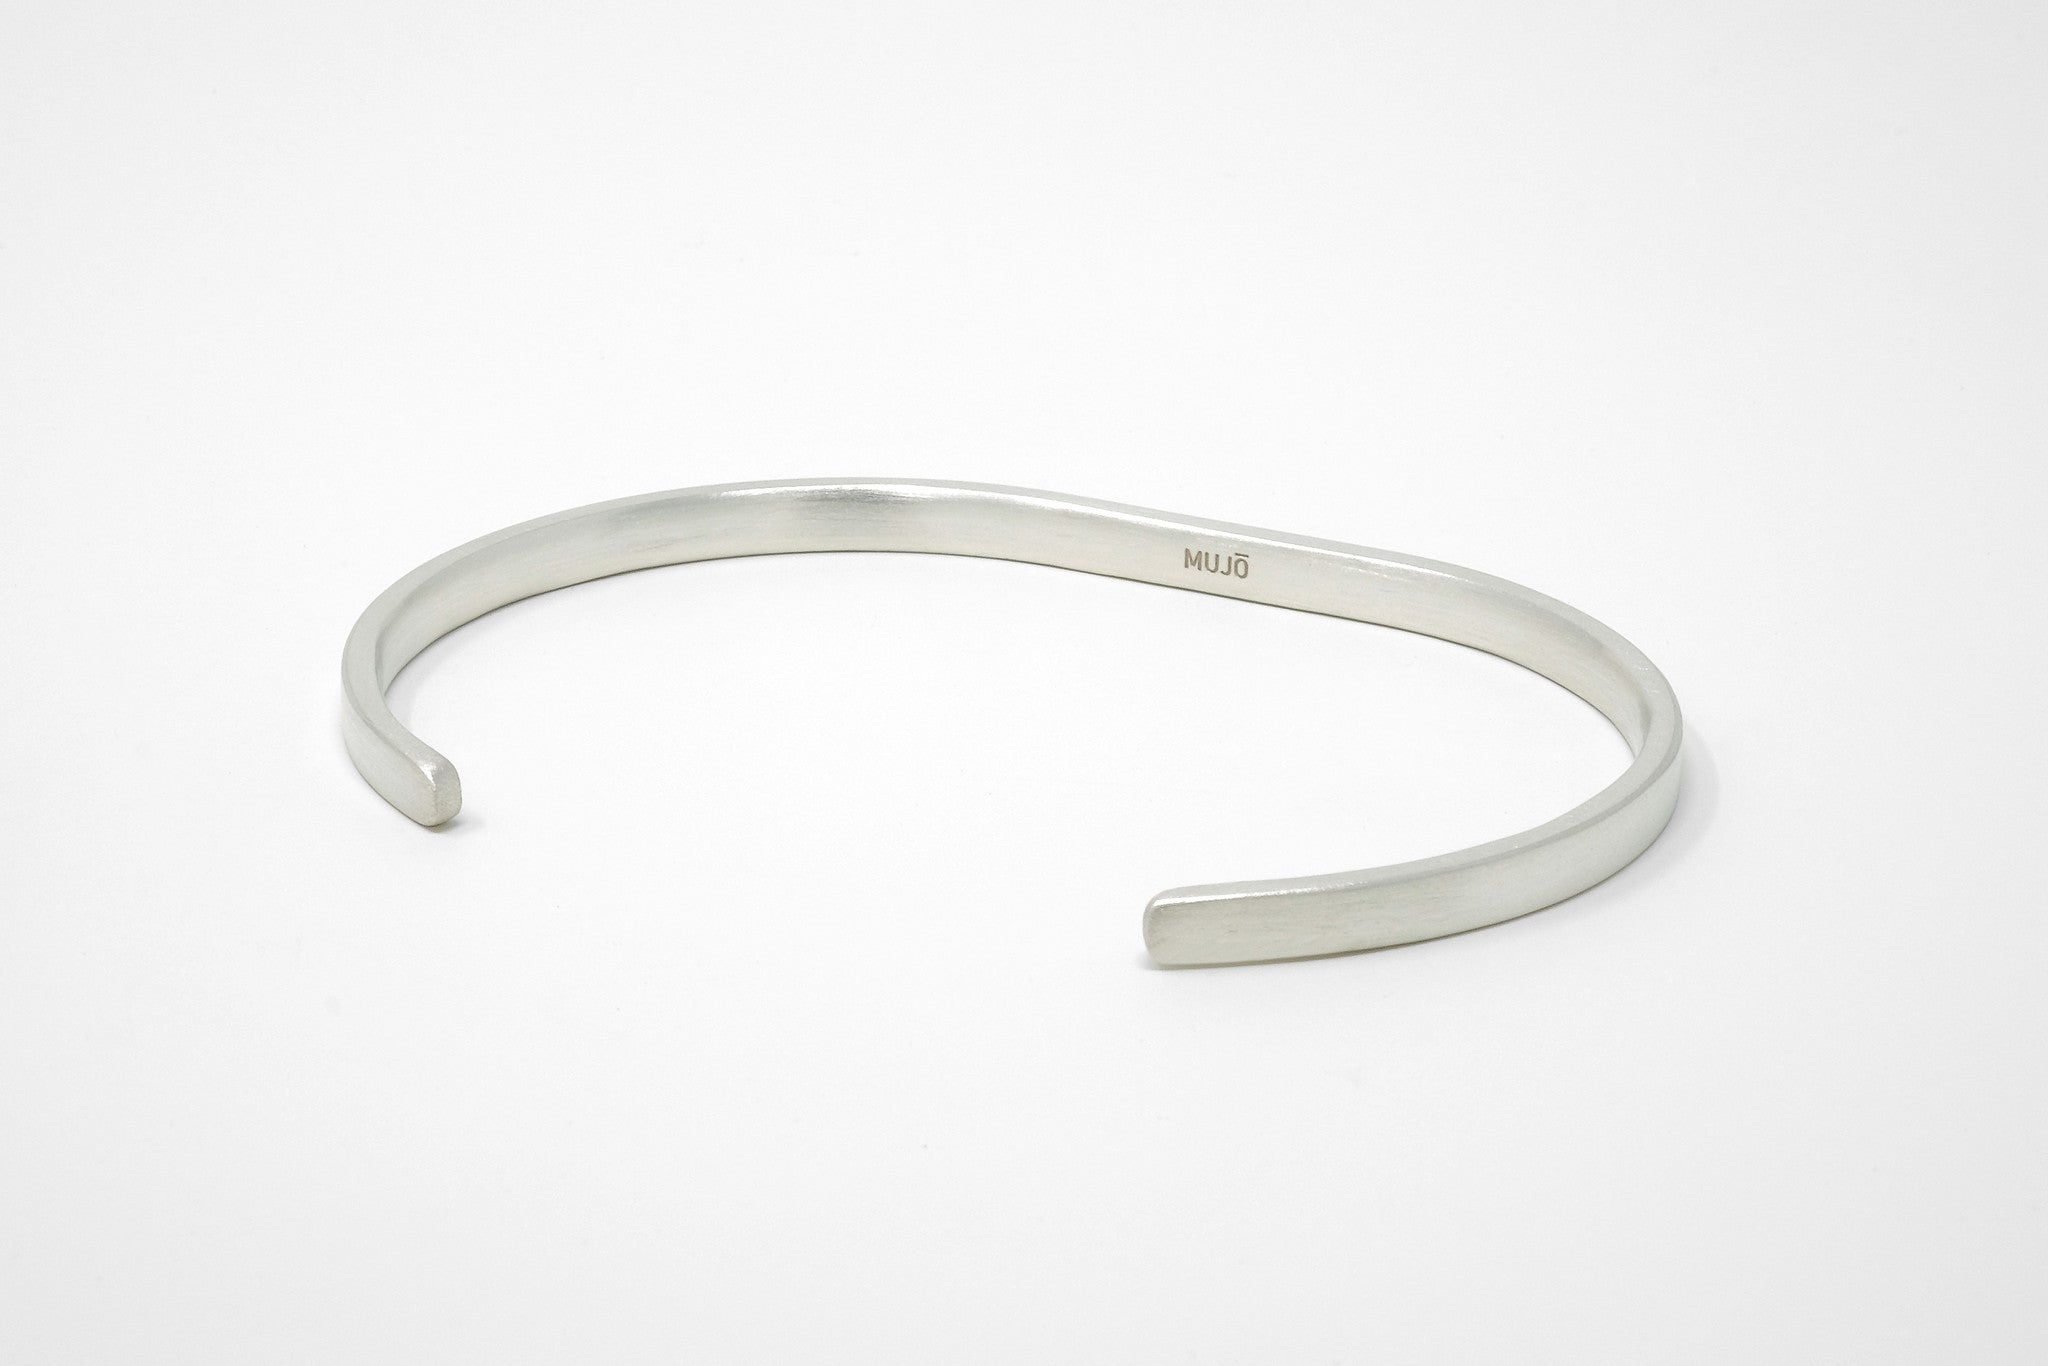 CS 4mm Cuff Bracelet // Sterling Silver - Men's Cuff Bracelet - MUJO NYC - 1